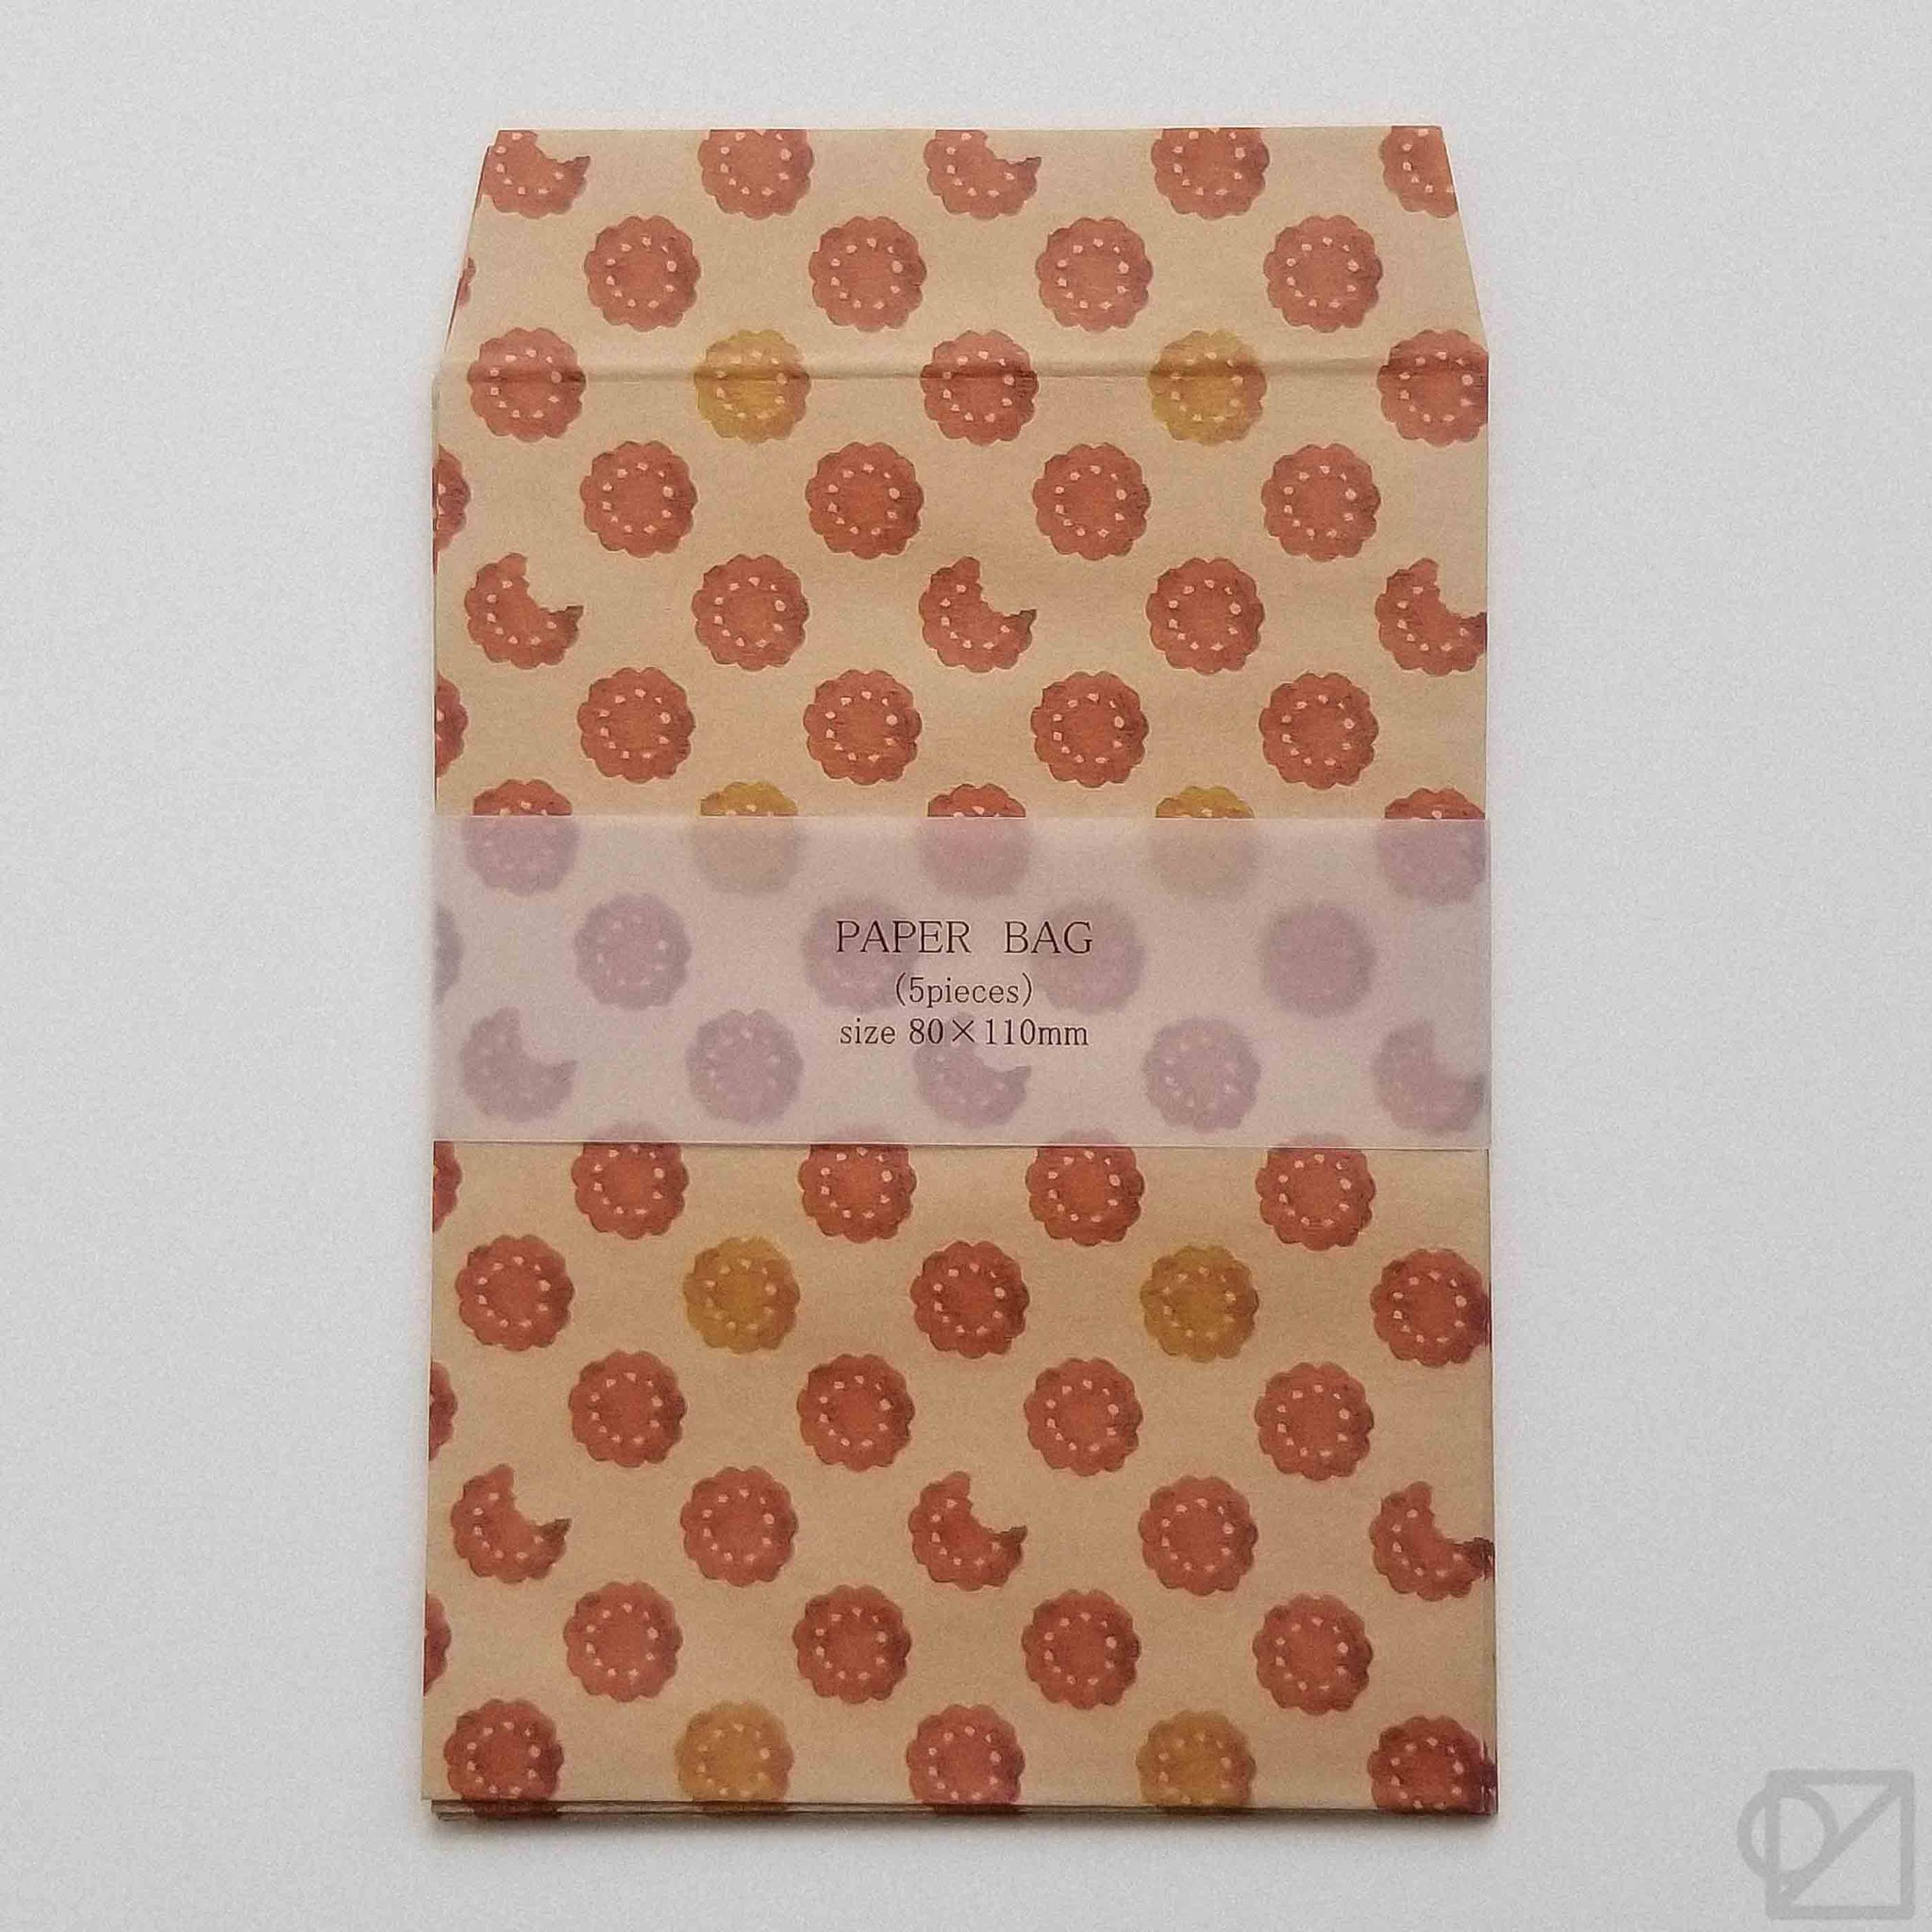 Tiny Wax Paper Envelope Tea Biscuits